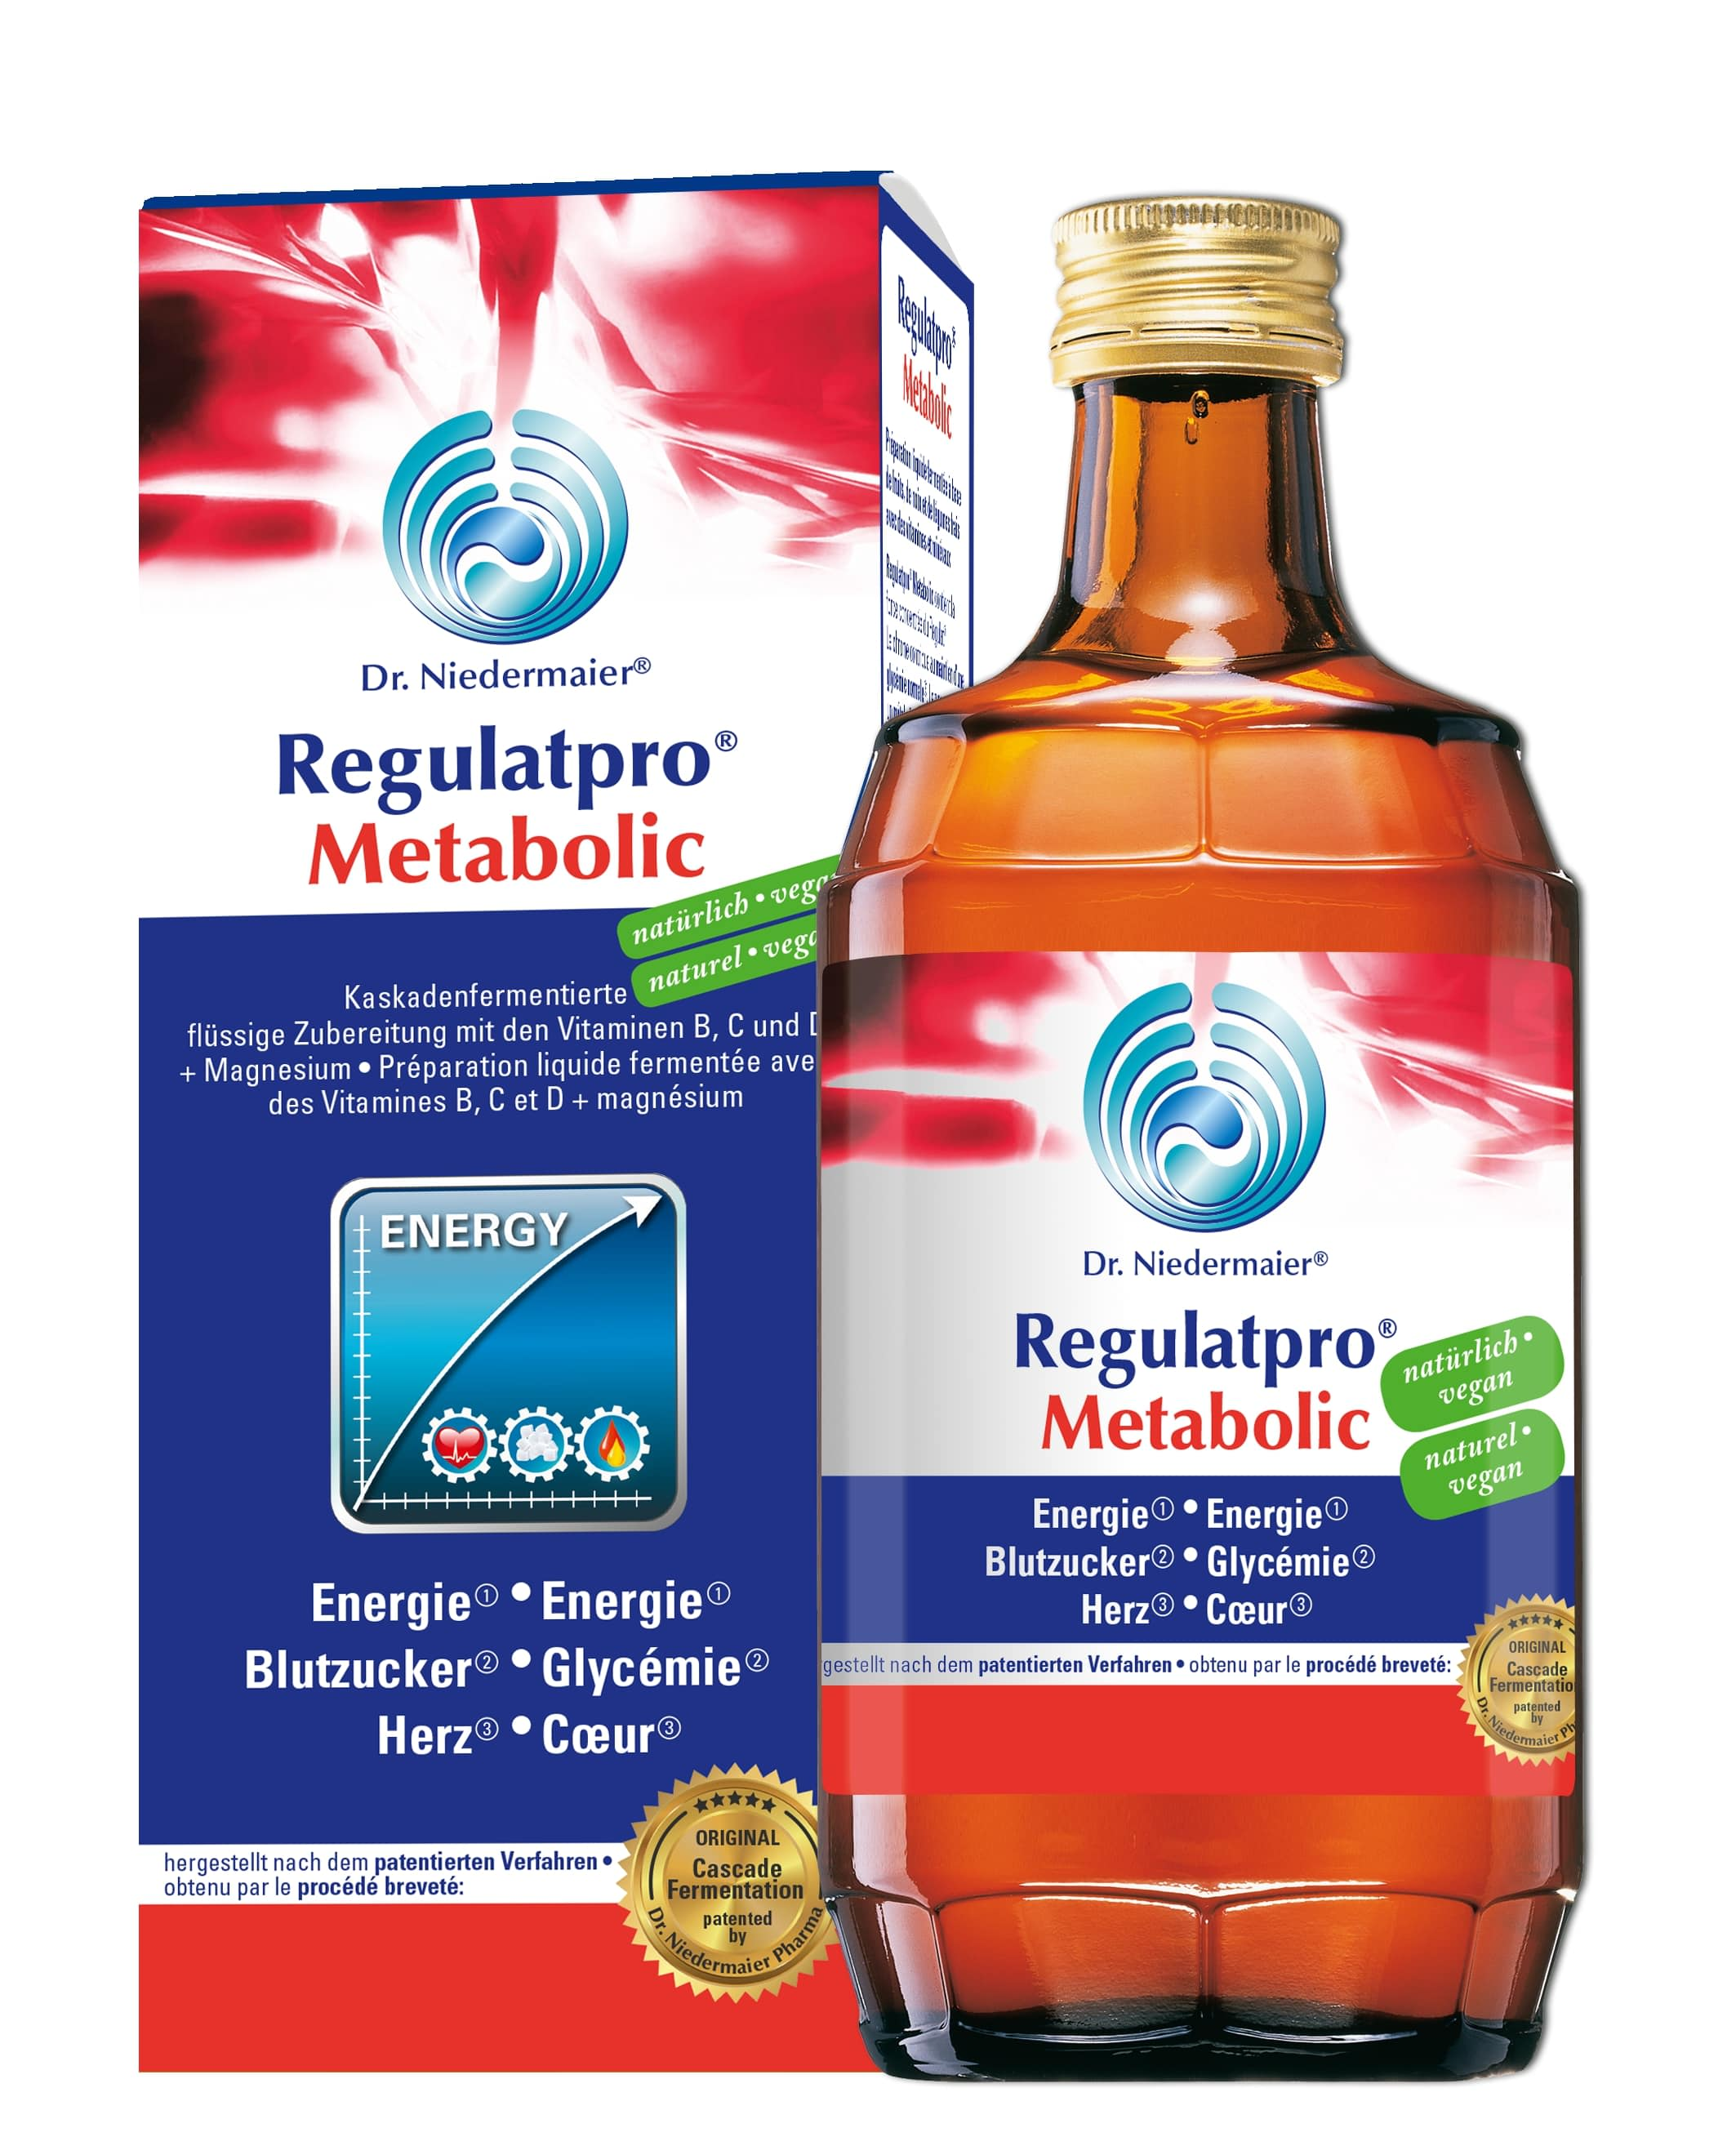 Dr. Niedermaier Regulatpro Metabolic (350ml)